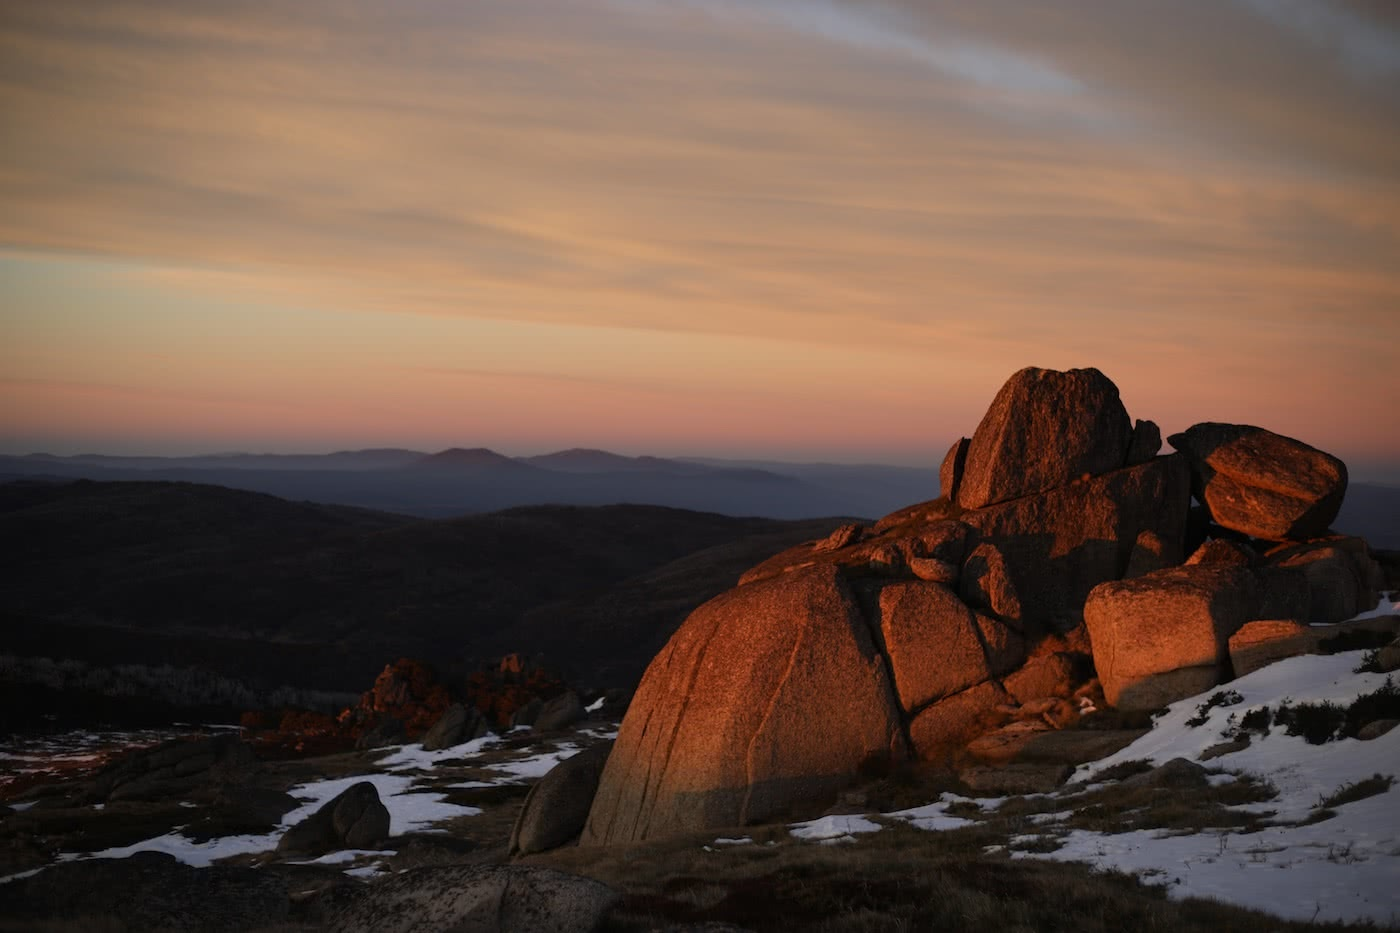 Spring Snow Campout // Main Range (NSW) by Mattie Gould, photo by Jon Harris, sunrise, mountains, rocks